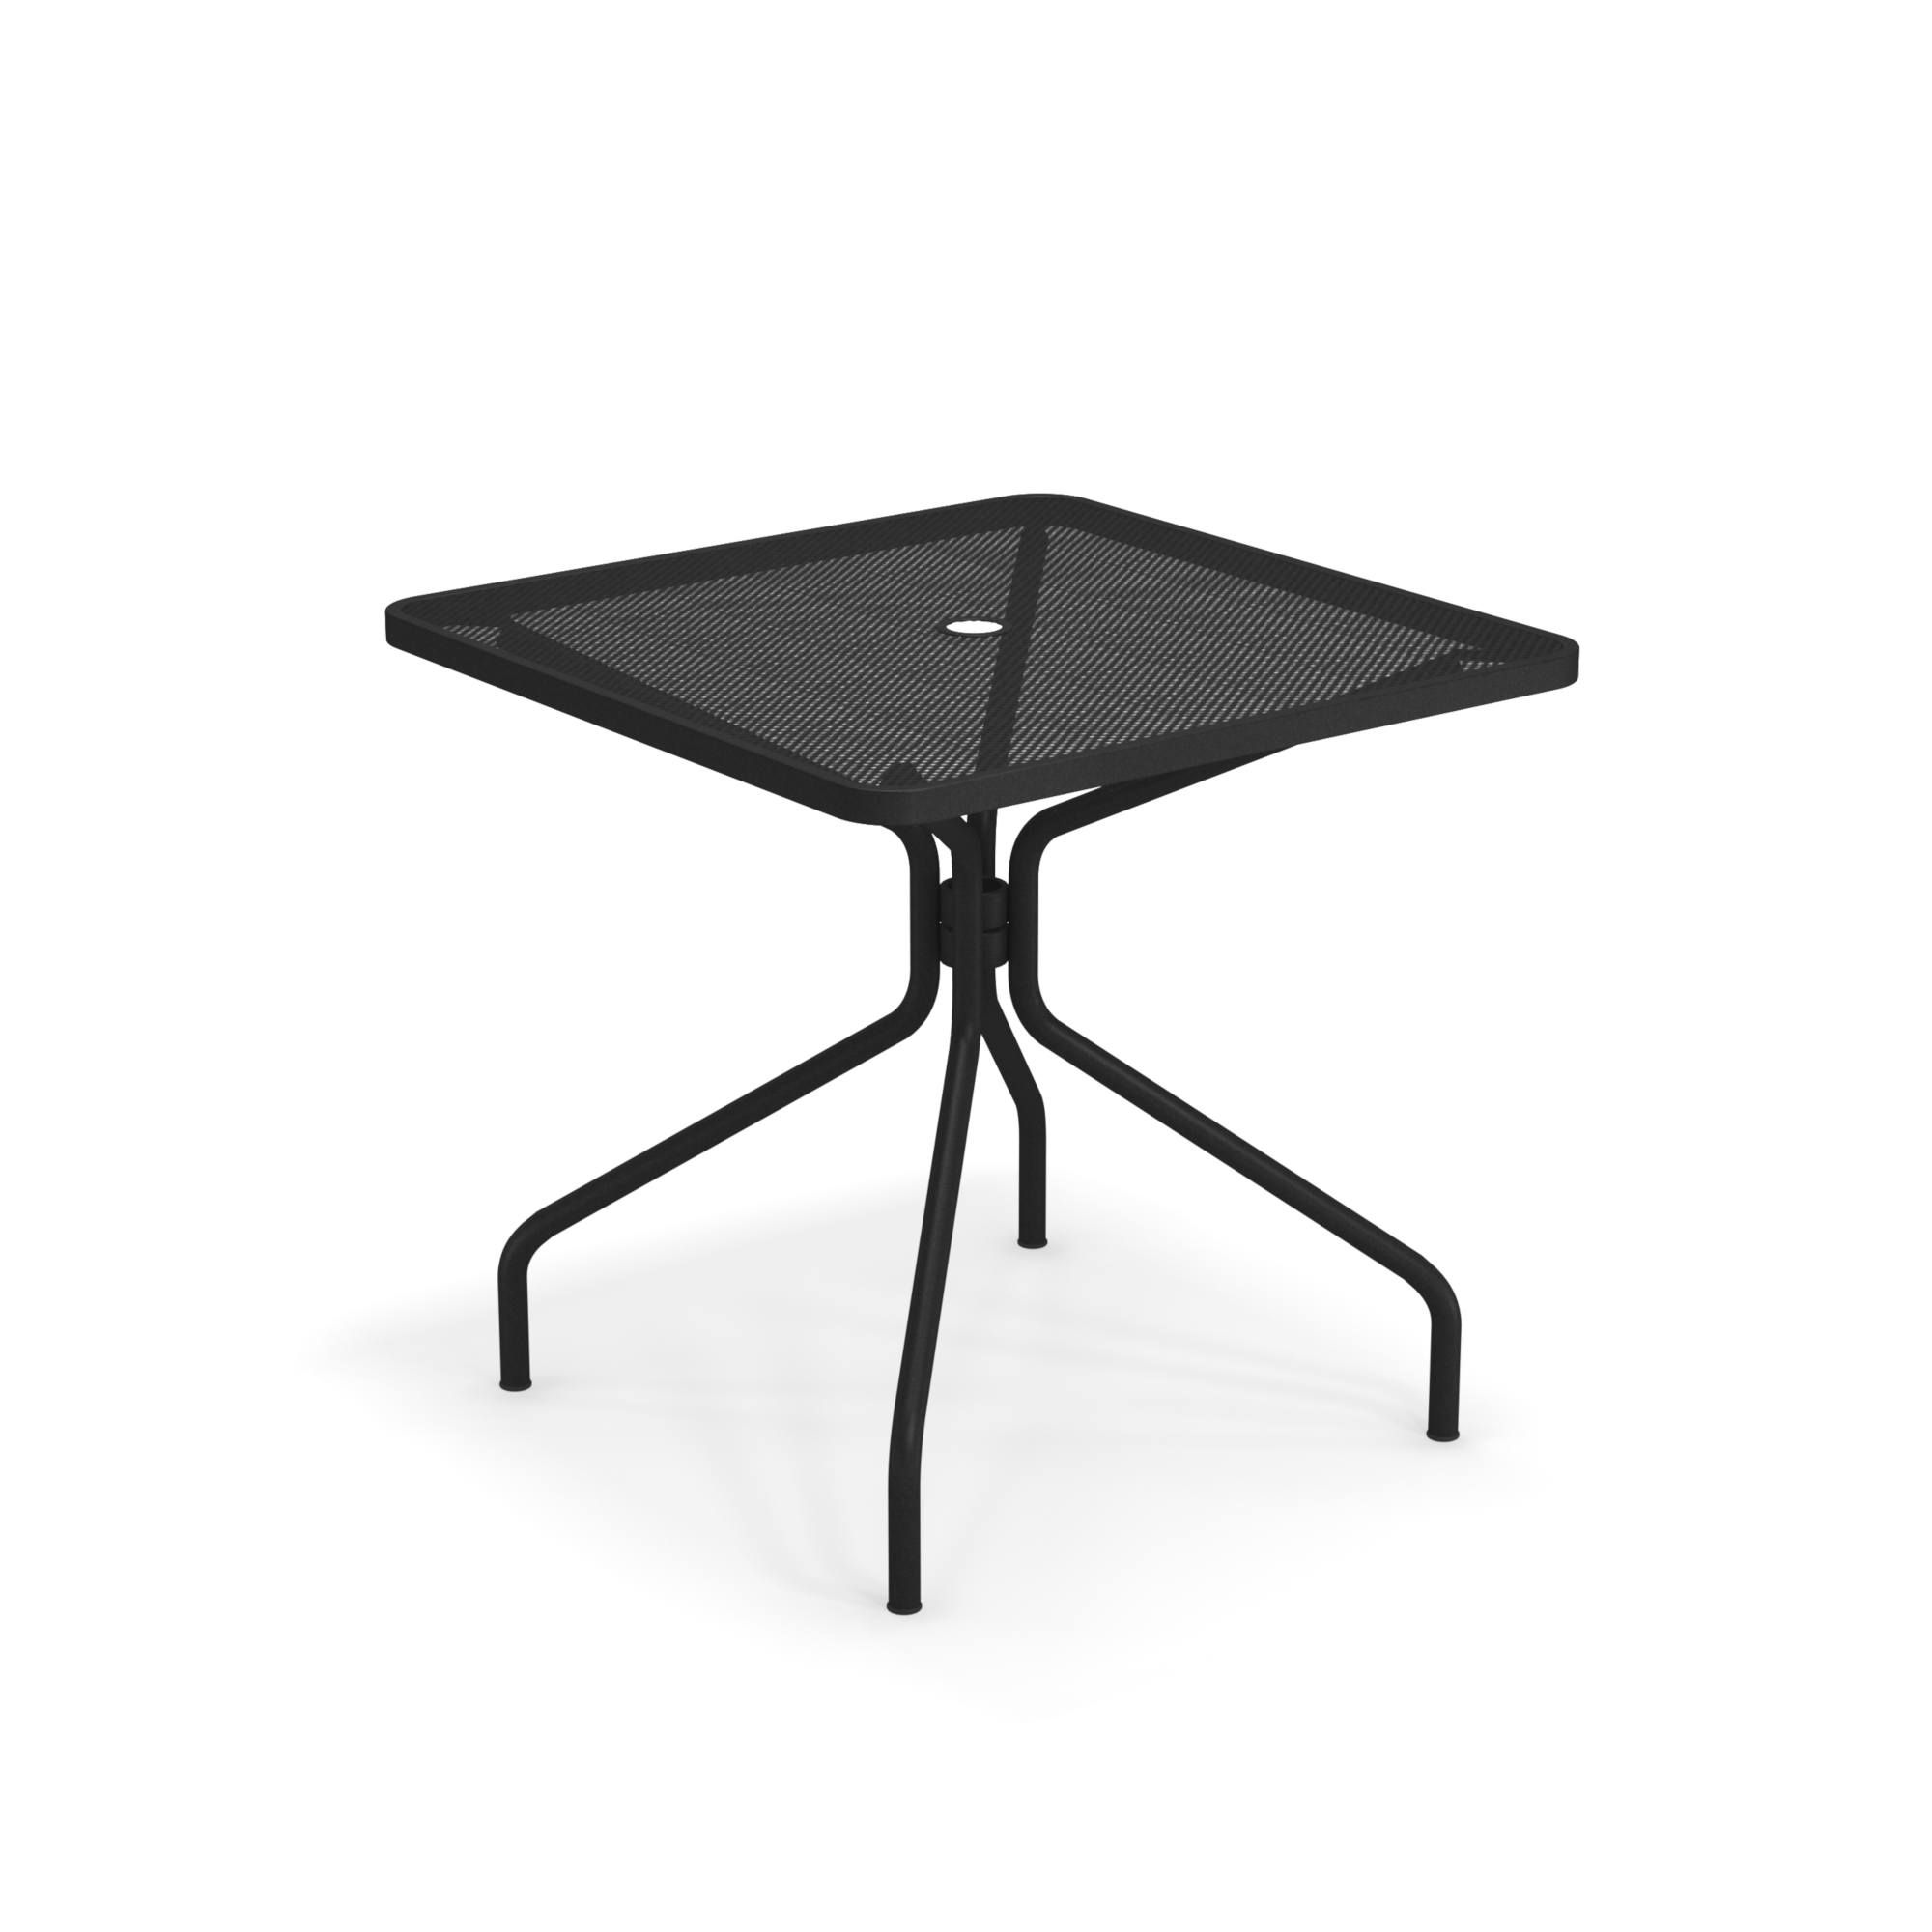 emuamericas, llc 801-24 table, outdoor